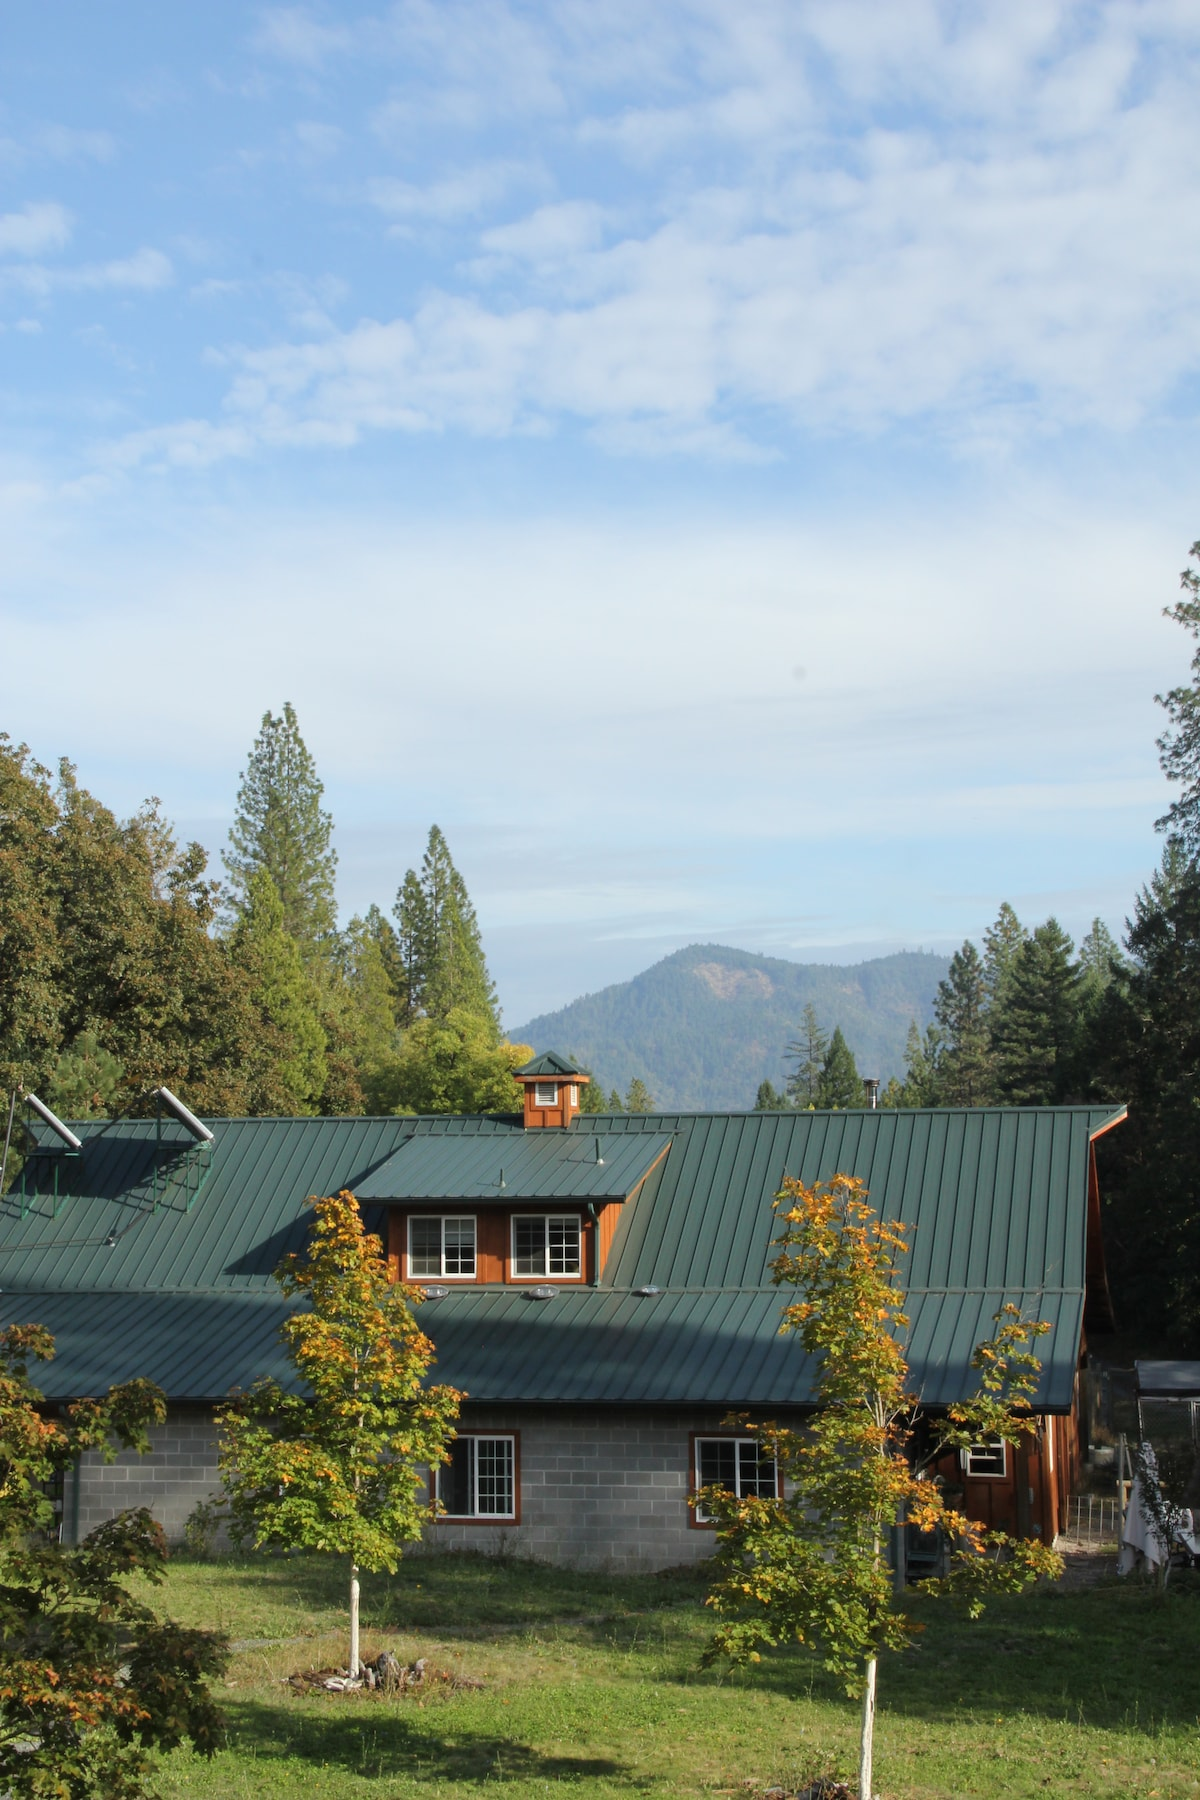 View of the dairy barn and Hillis Peak to the East